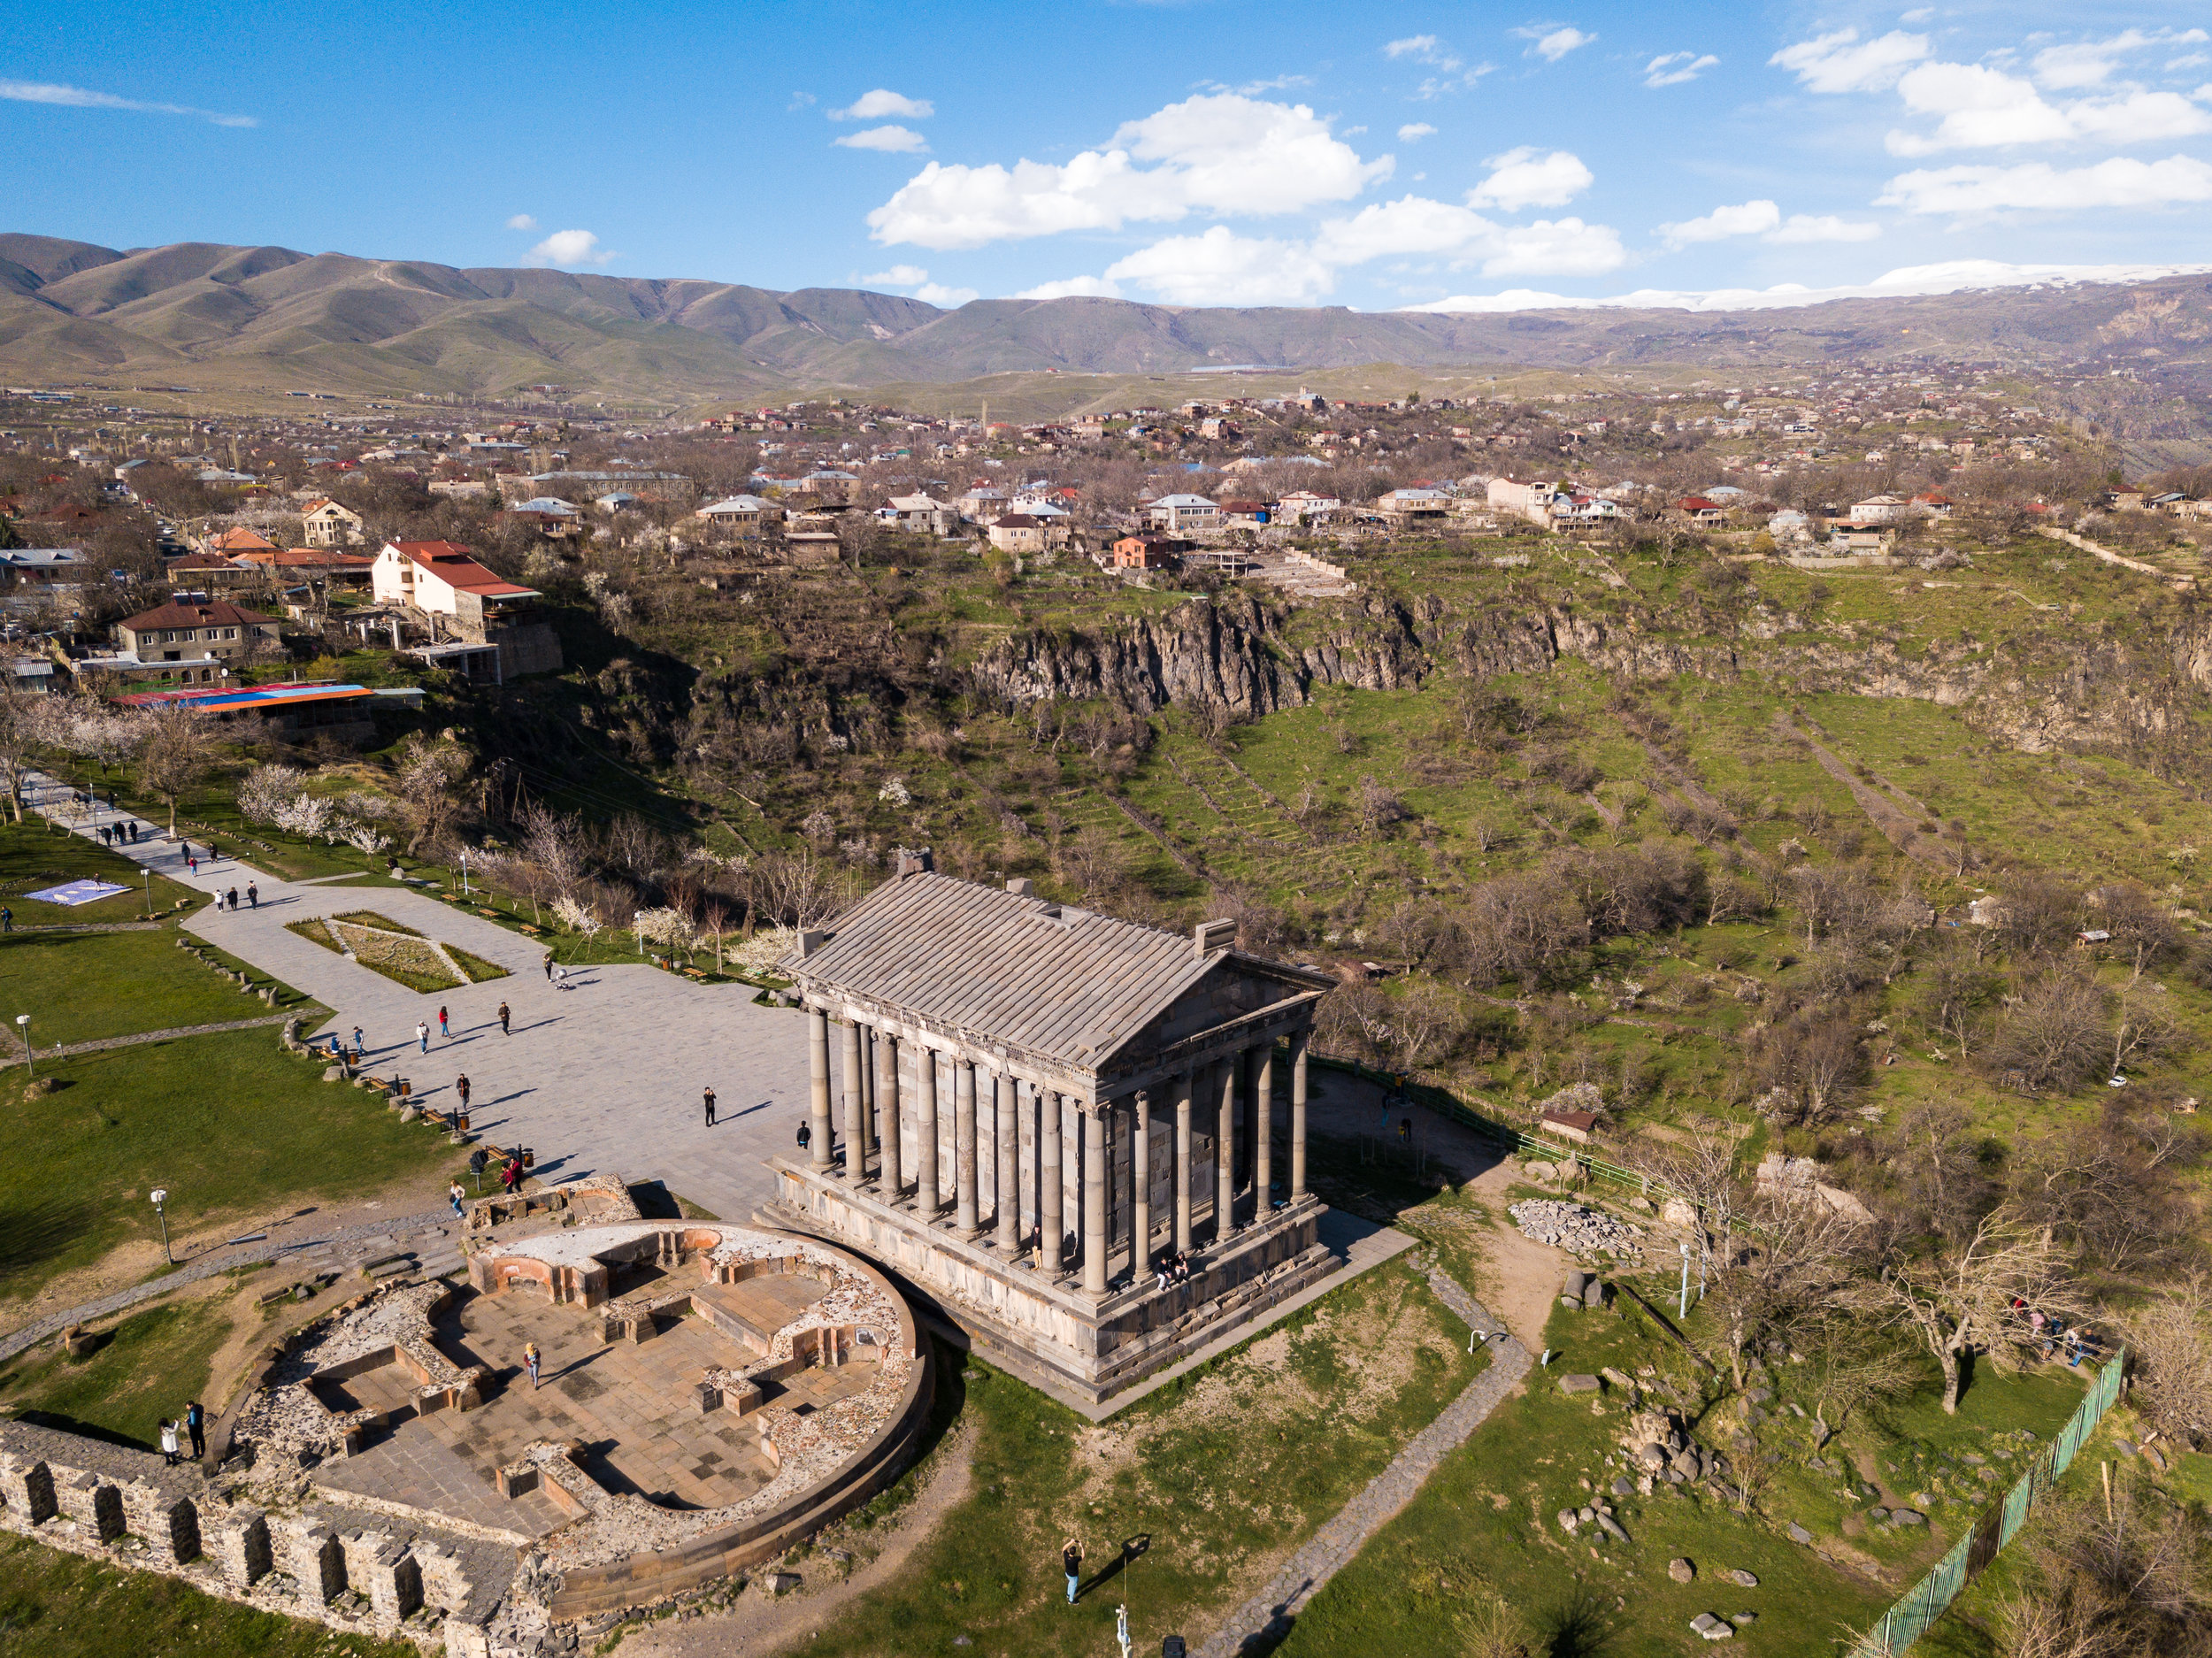 Garni Temple Aerial View